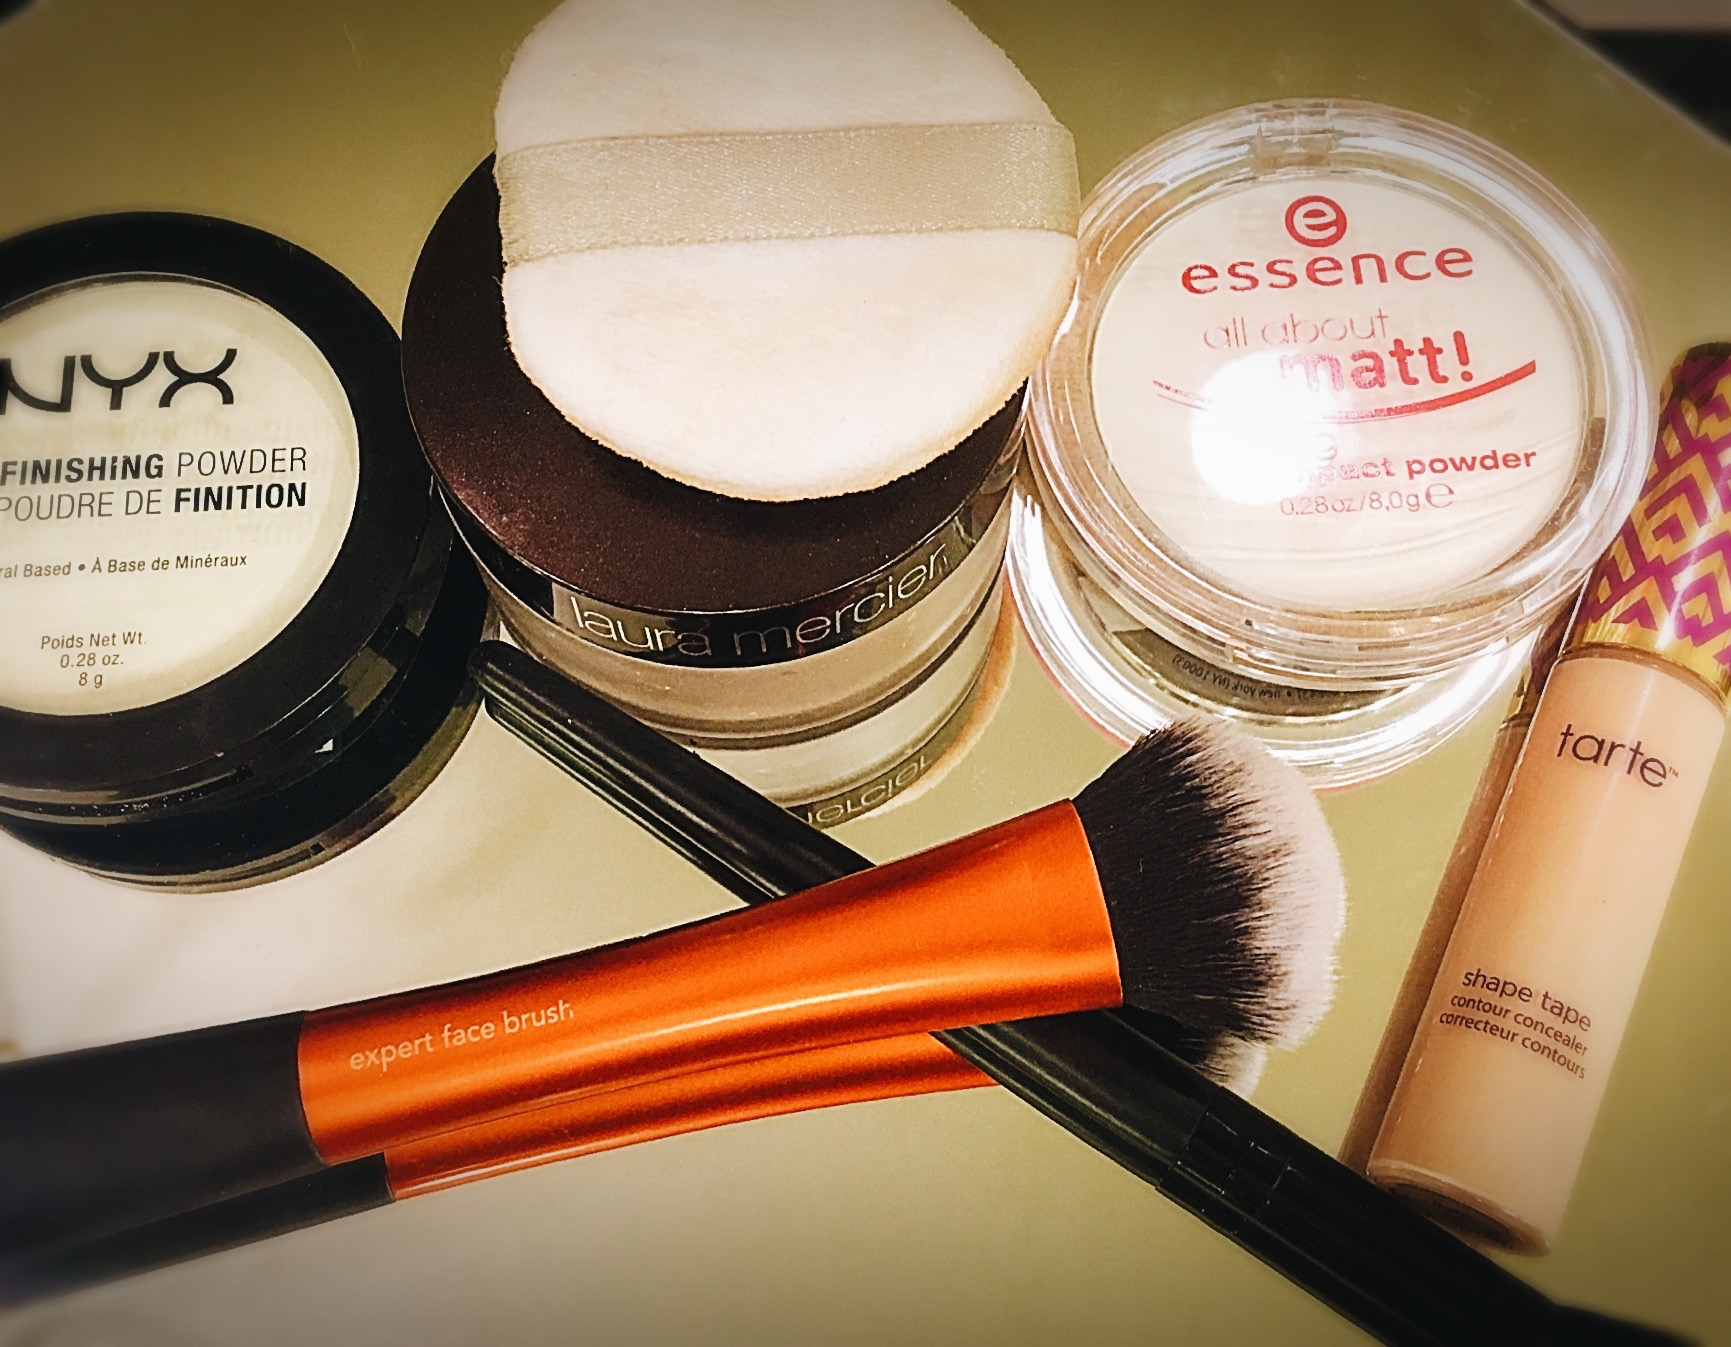 Makeup Daily Beauty Wisdom Revlon Touch And Glow Face Powder 43 Gr Step 5 Once You Are Satisfied With The Level Of Coverage Youve Achieved Blend Out Any Creasing Set This Product Your Favorite Setting